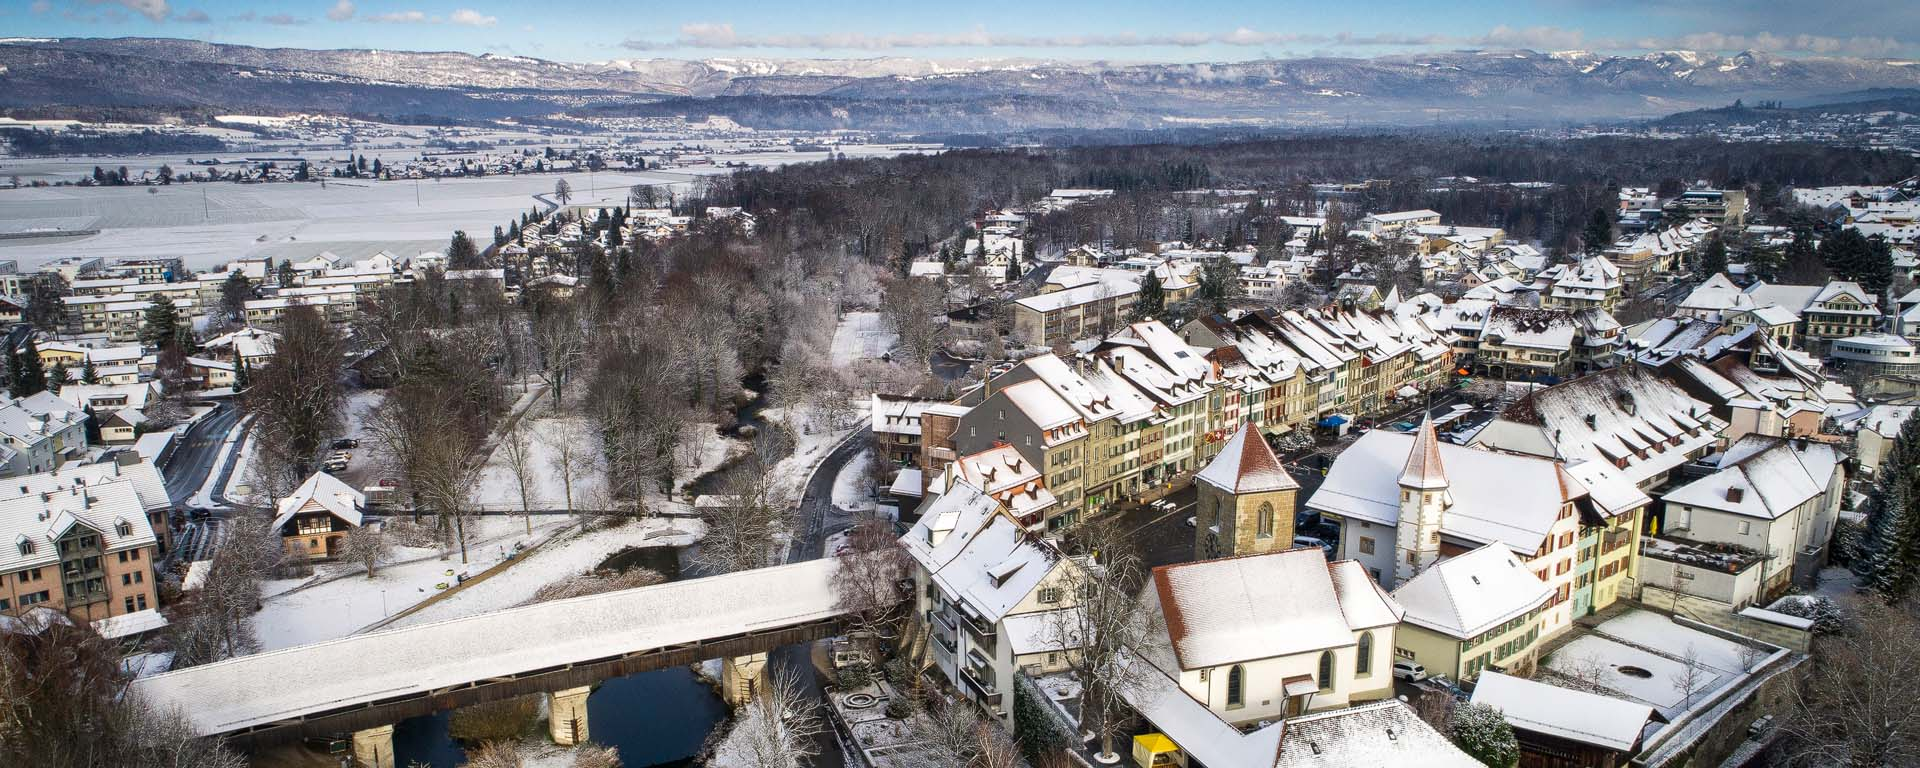 Aarberg im Winter